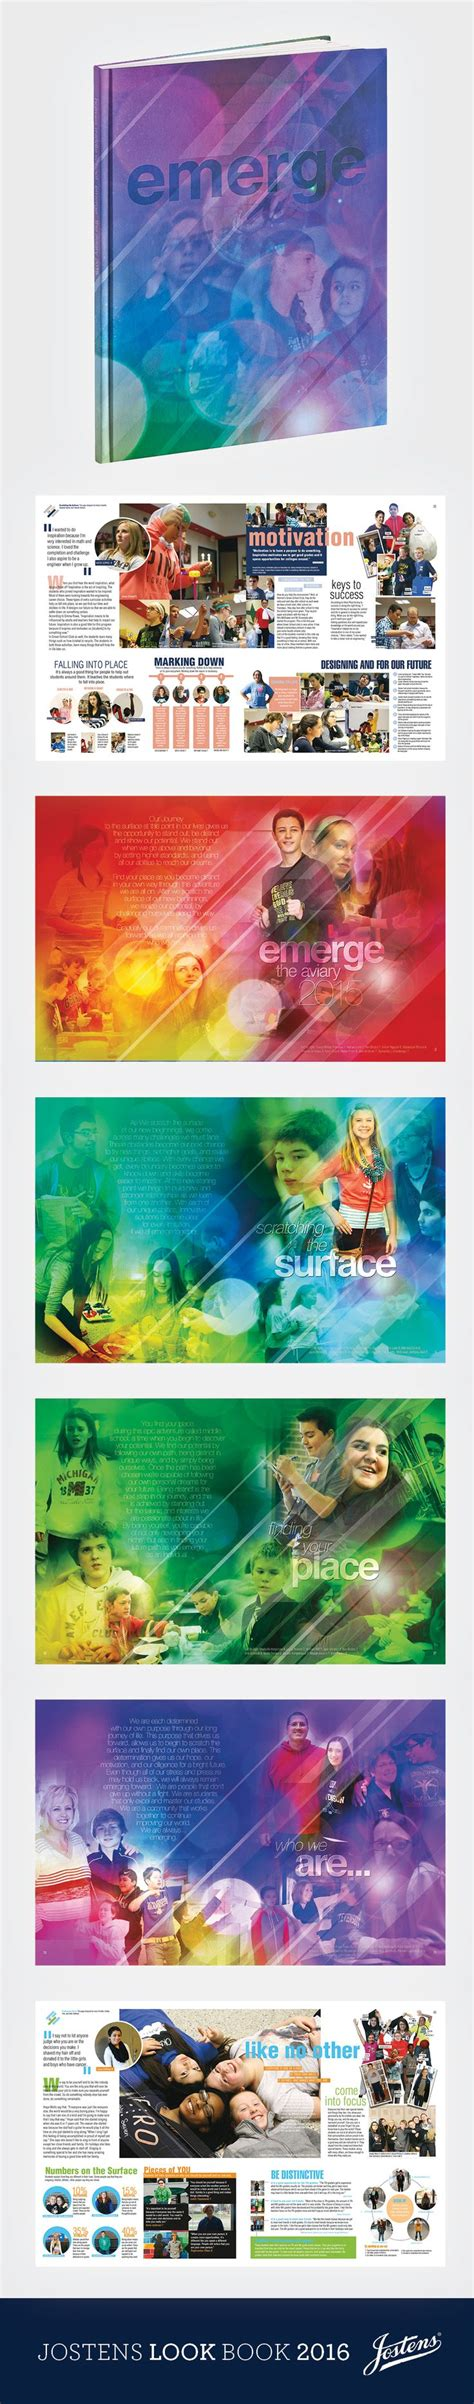 yearbook cover layout 361 best yearbook covers images on pinterest